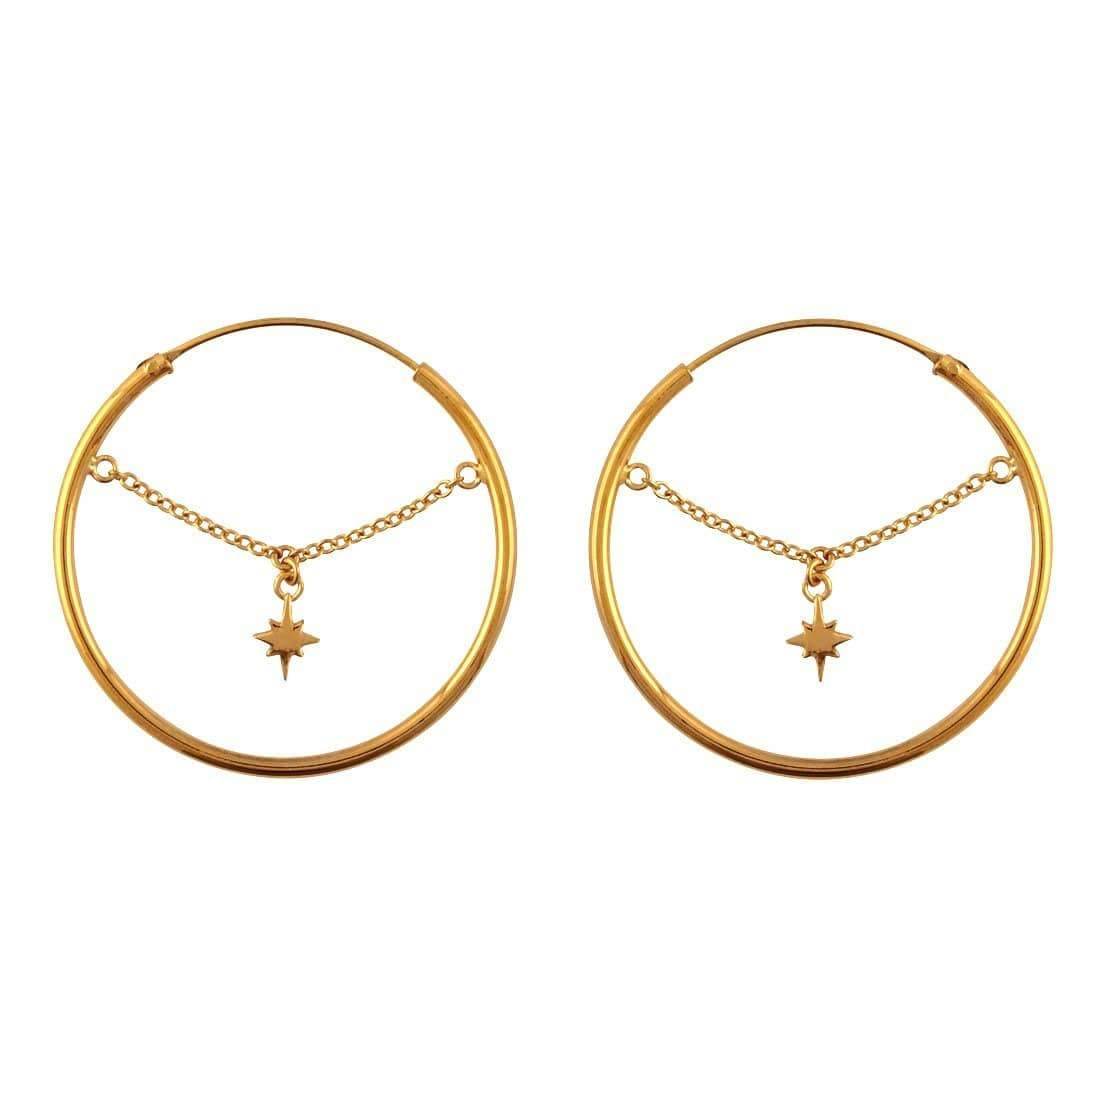 Midsummer Star Earrings Gold Celestial Chain Hoops